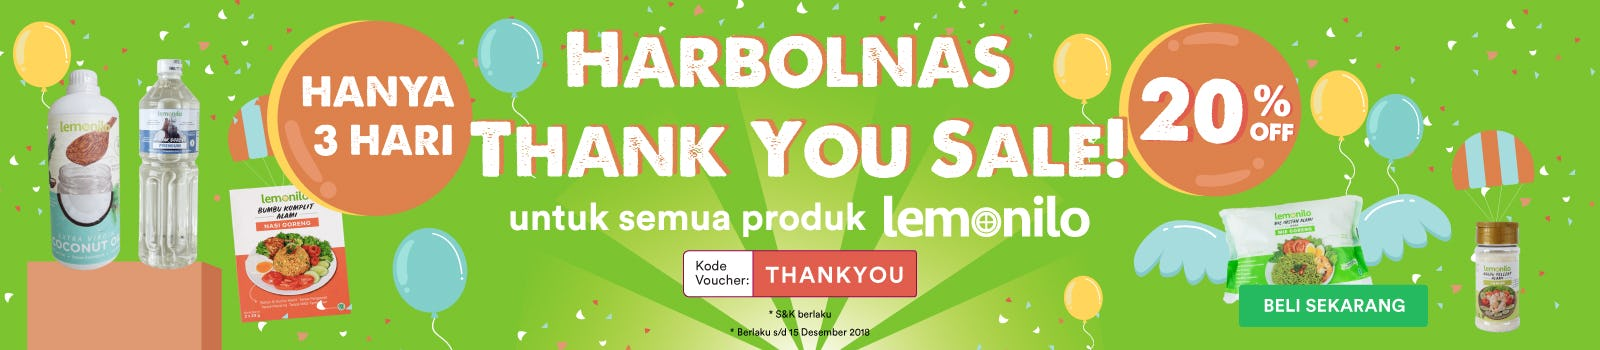 Harbolnas Thank You Sale